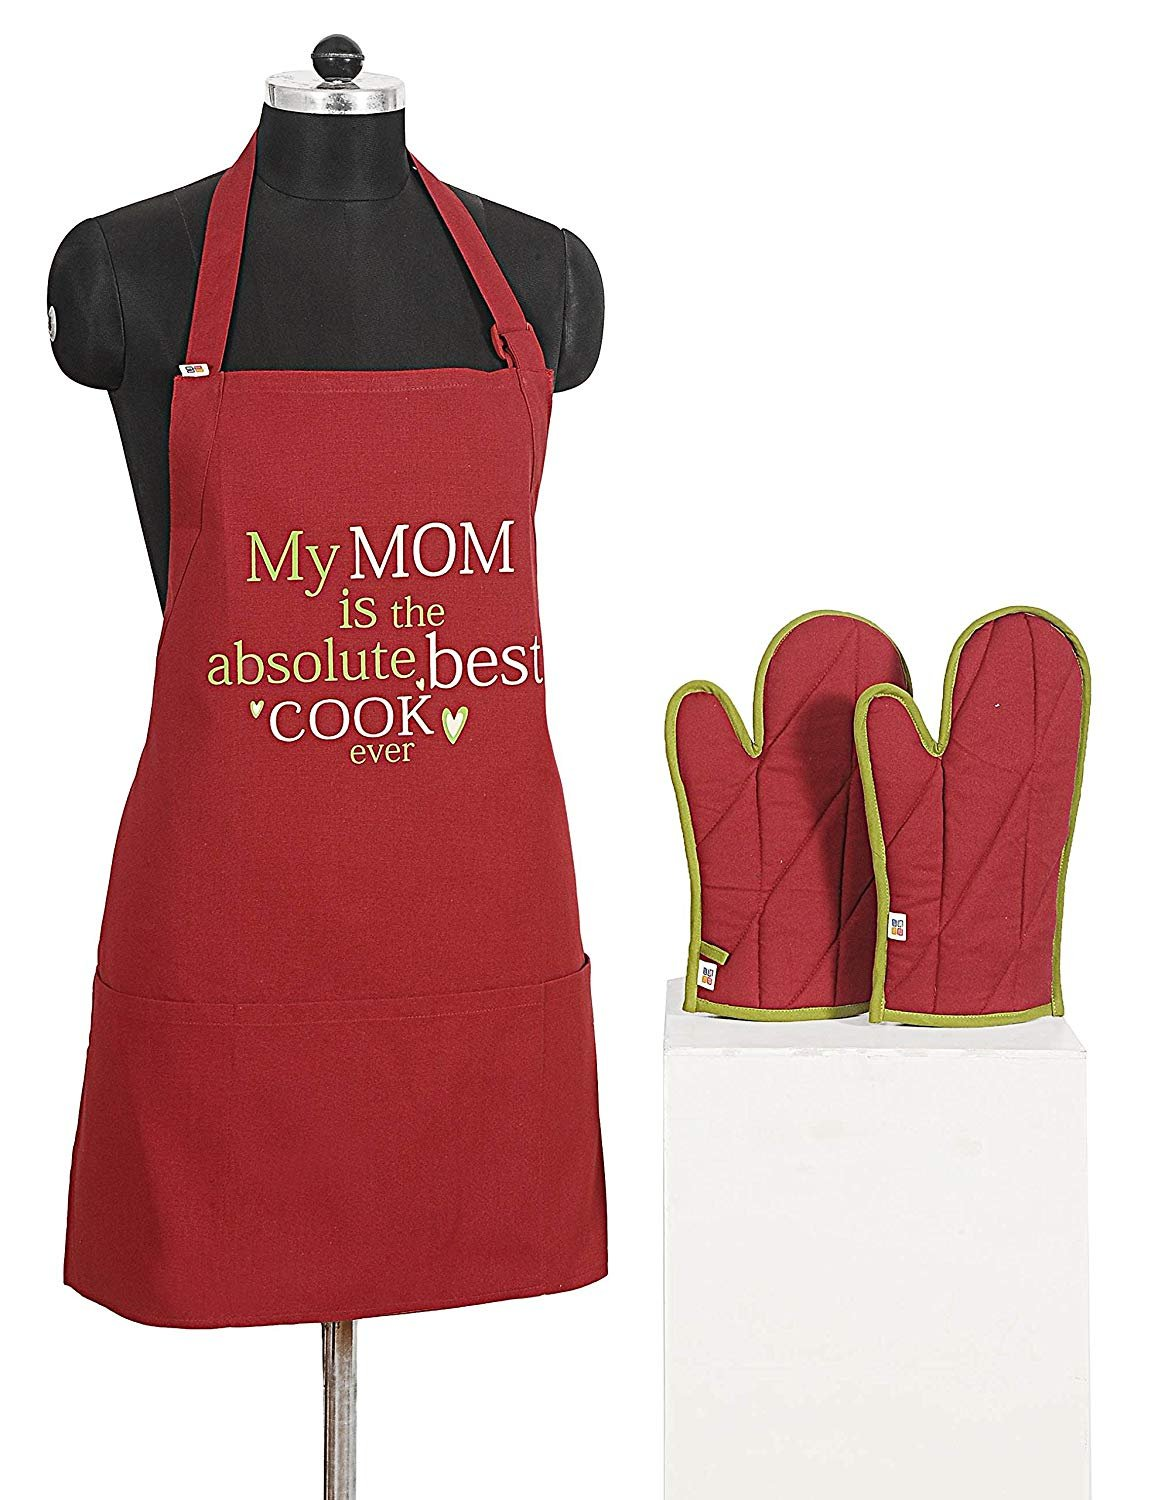 Cotton Kitchen Chef Apron with 3 Pockets & Oven Mitts gloves Set - Adjustable Neck Strap & Waist Ties - Graphic Screen Print - Women Gifts Apron for Cooking